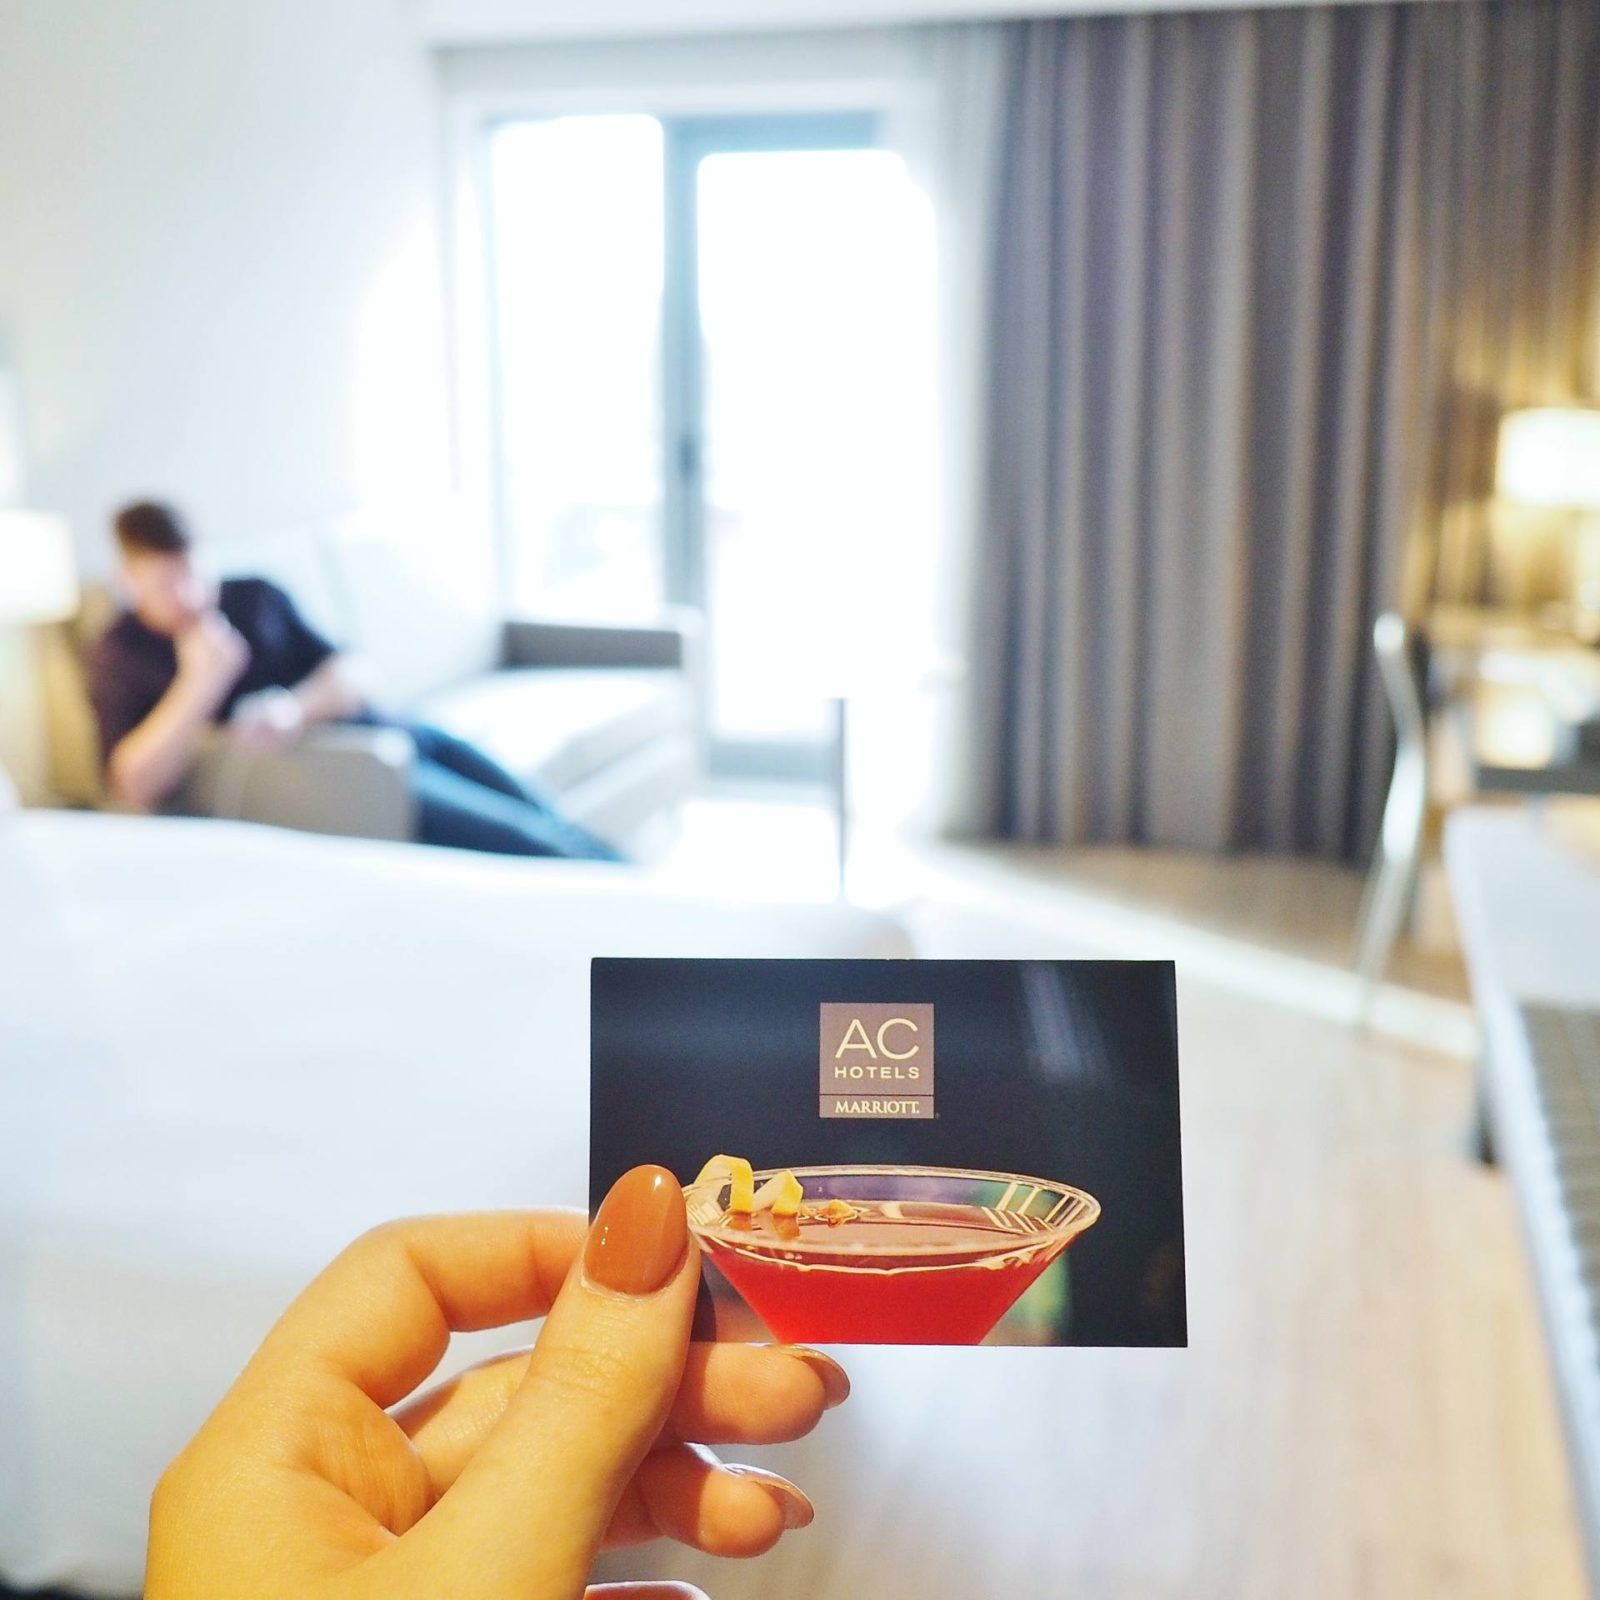 Emma Victoria Stokes AC Hotels Marriott Birmingham Review